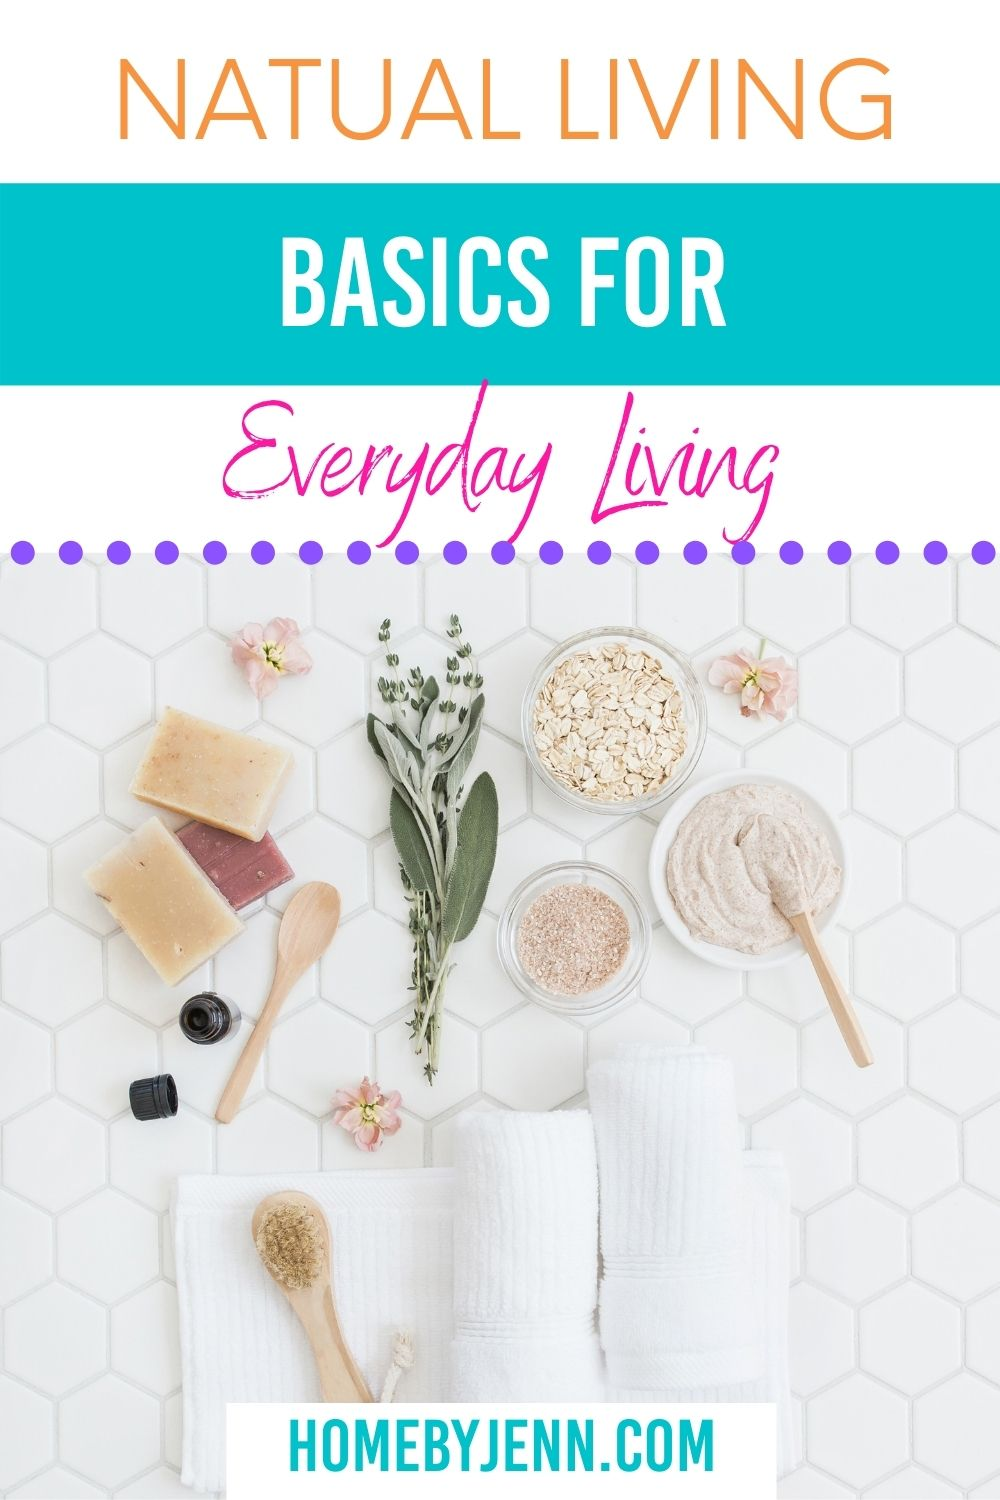 If you've been wanting to live a more natural and eco-friendly life it can be overwhelming to know where to start. Take a look at some natural living ideas for everyday living. By taking small steps you and your family can start living a more natural life with ease. via @homebyjenn